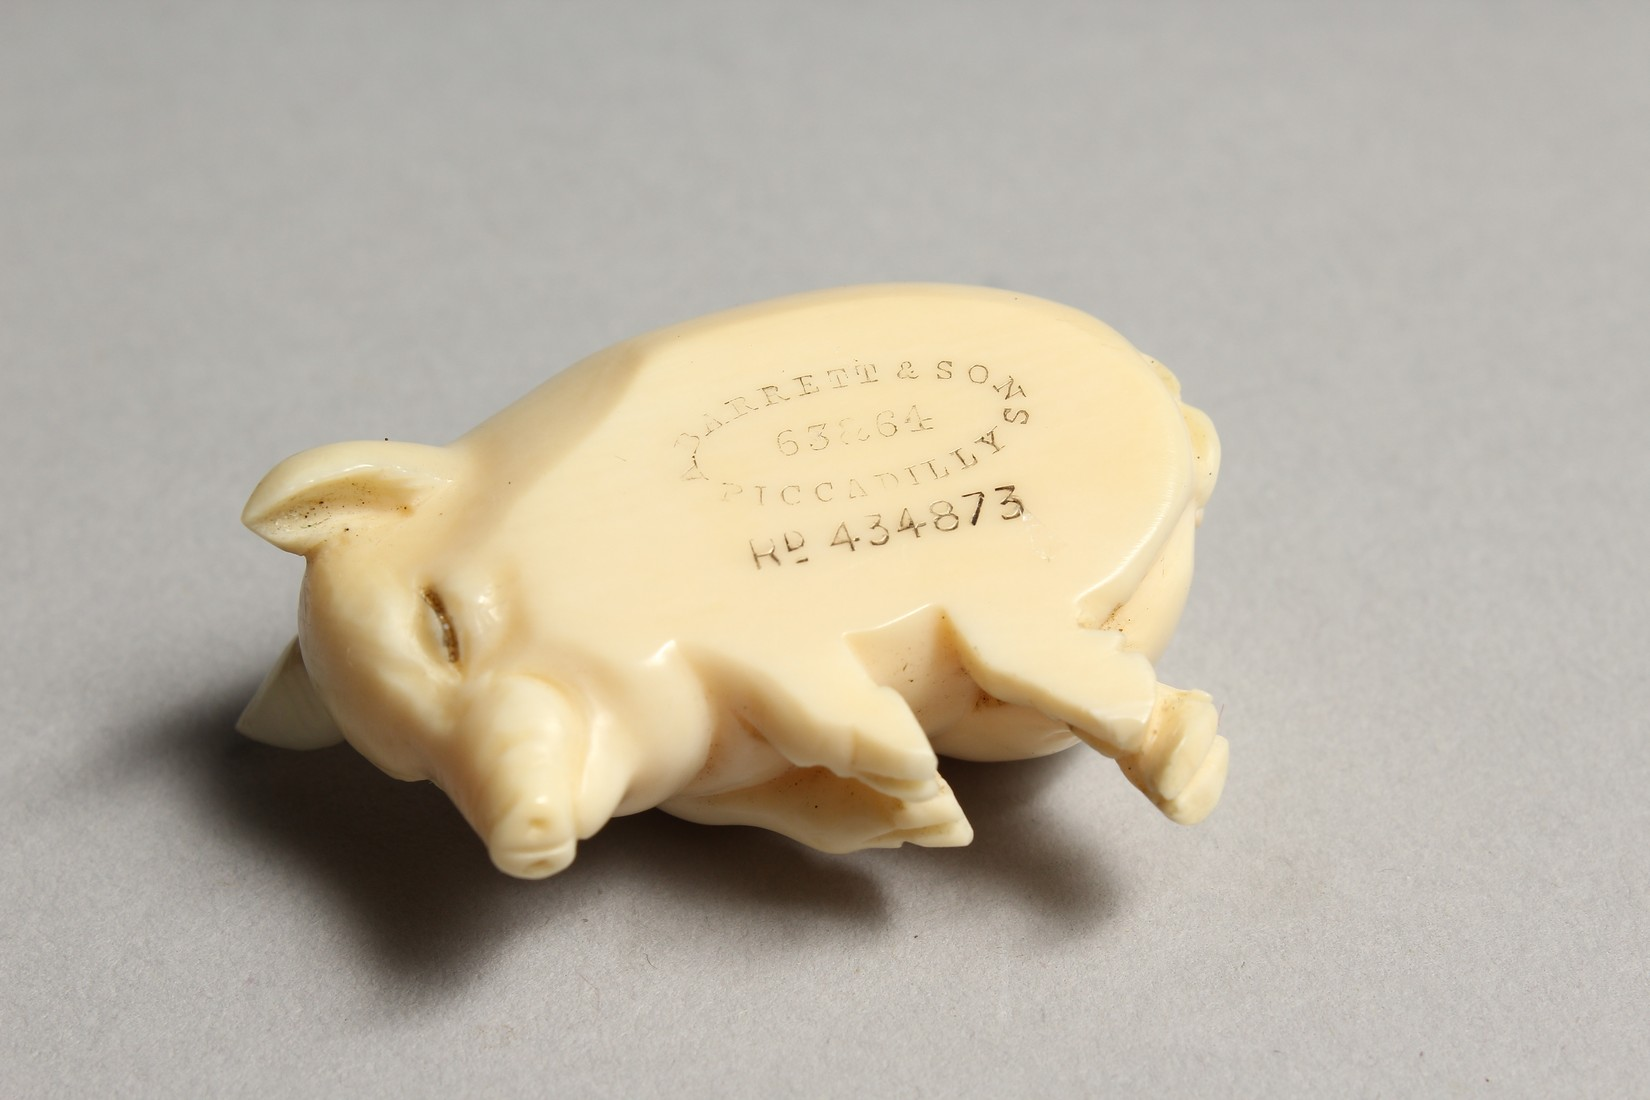 AN IVORY LUCKY PIG, GARRET & SONS, PICCADILLY. 1ins. - Image 6 of 7